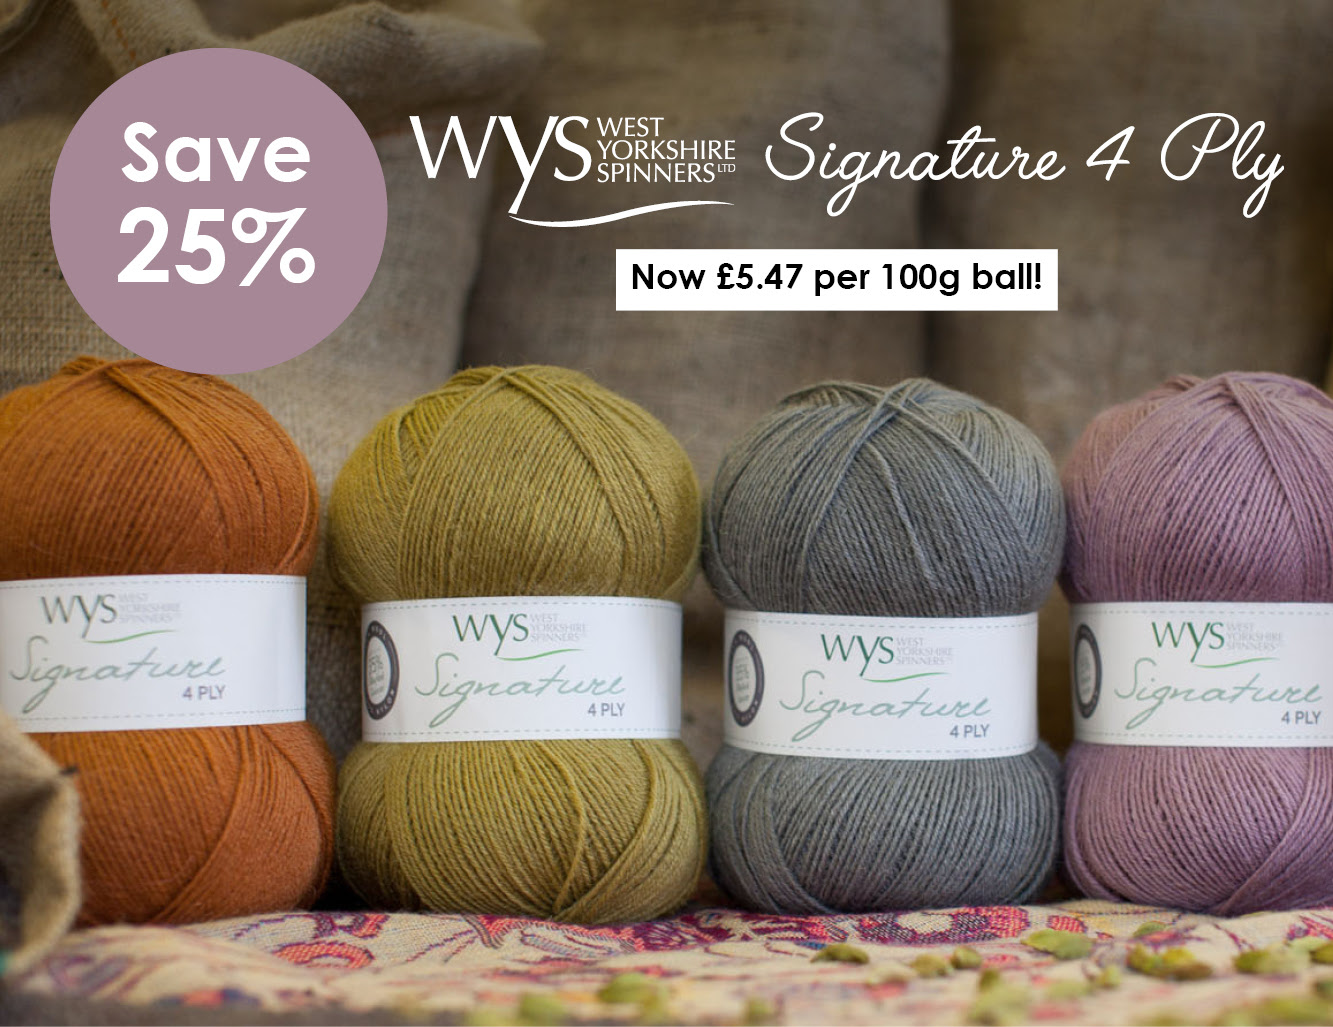 25% off selected West Yorkshire Spinners yarns at Wool Warehouse